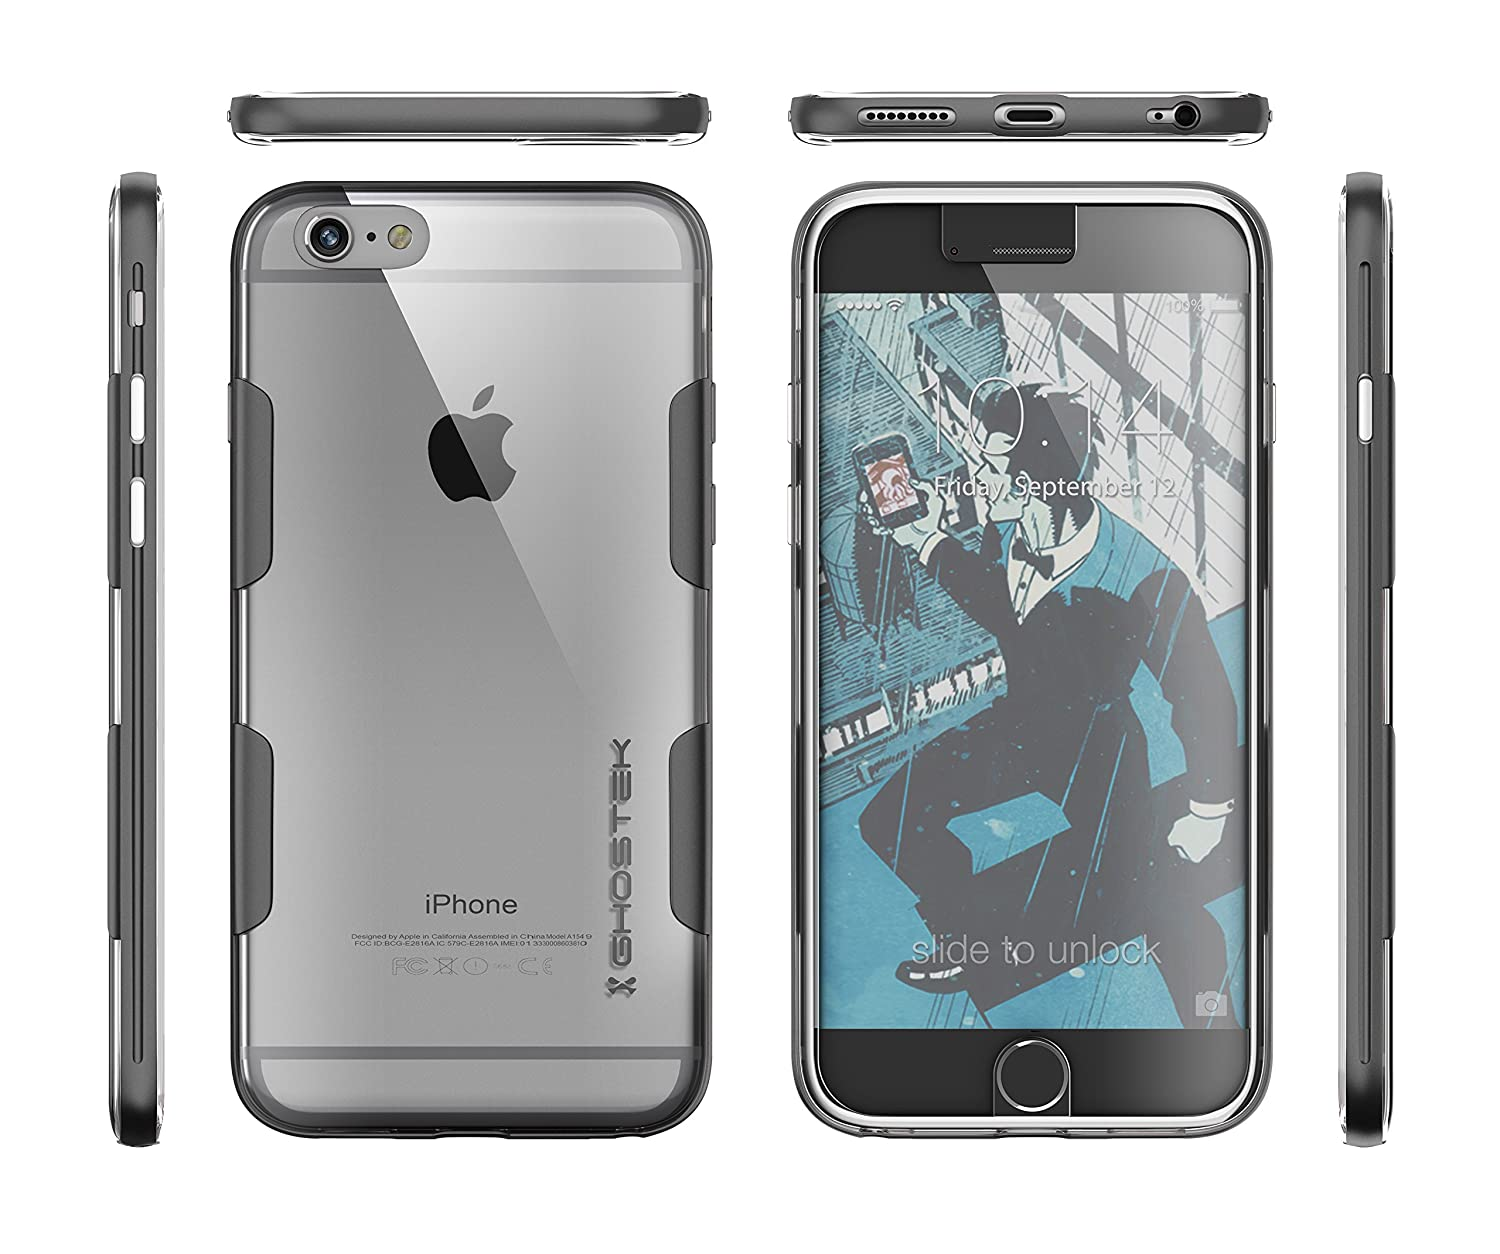 apple iphone 6 space grey. cloak series for apple iphone 6 plus slim protective armor case cover | tempered glass screen protector aluminum frame tpu exchange (space gray): iphone space grey